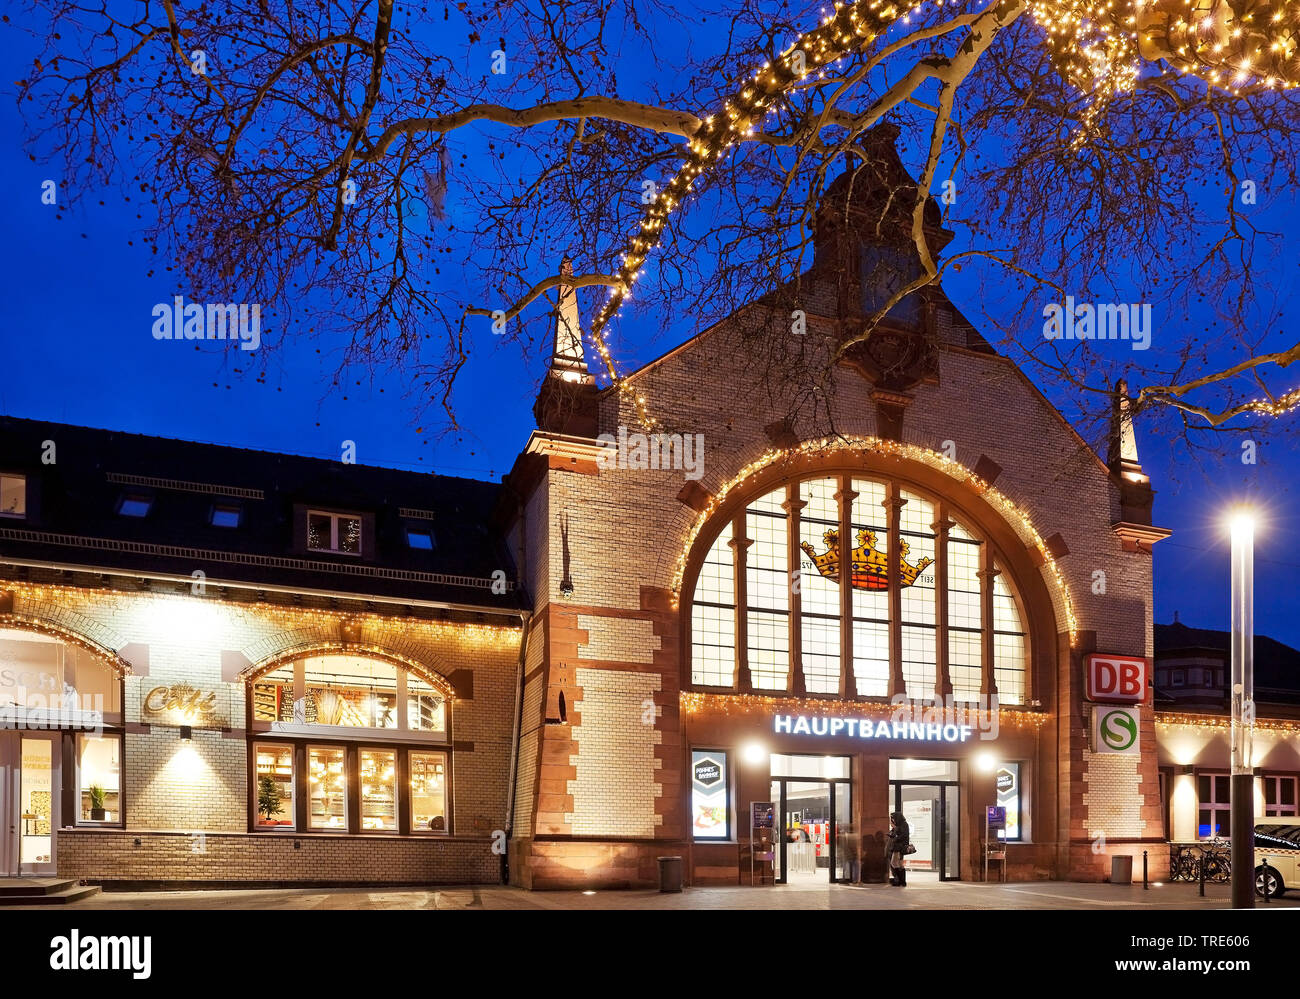 beleuchteter Hauptbahnhof am Abend, Deutschland, Nordrhein-Westfalen, Ruhrgebiet, Witten | illuminated central station in the evening, Germany, North - Stock Image